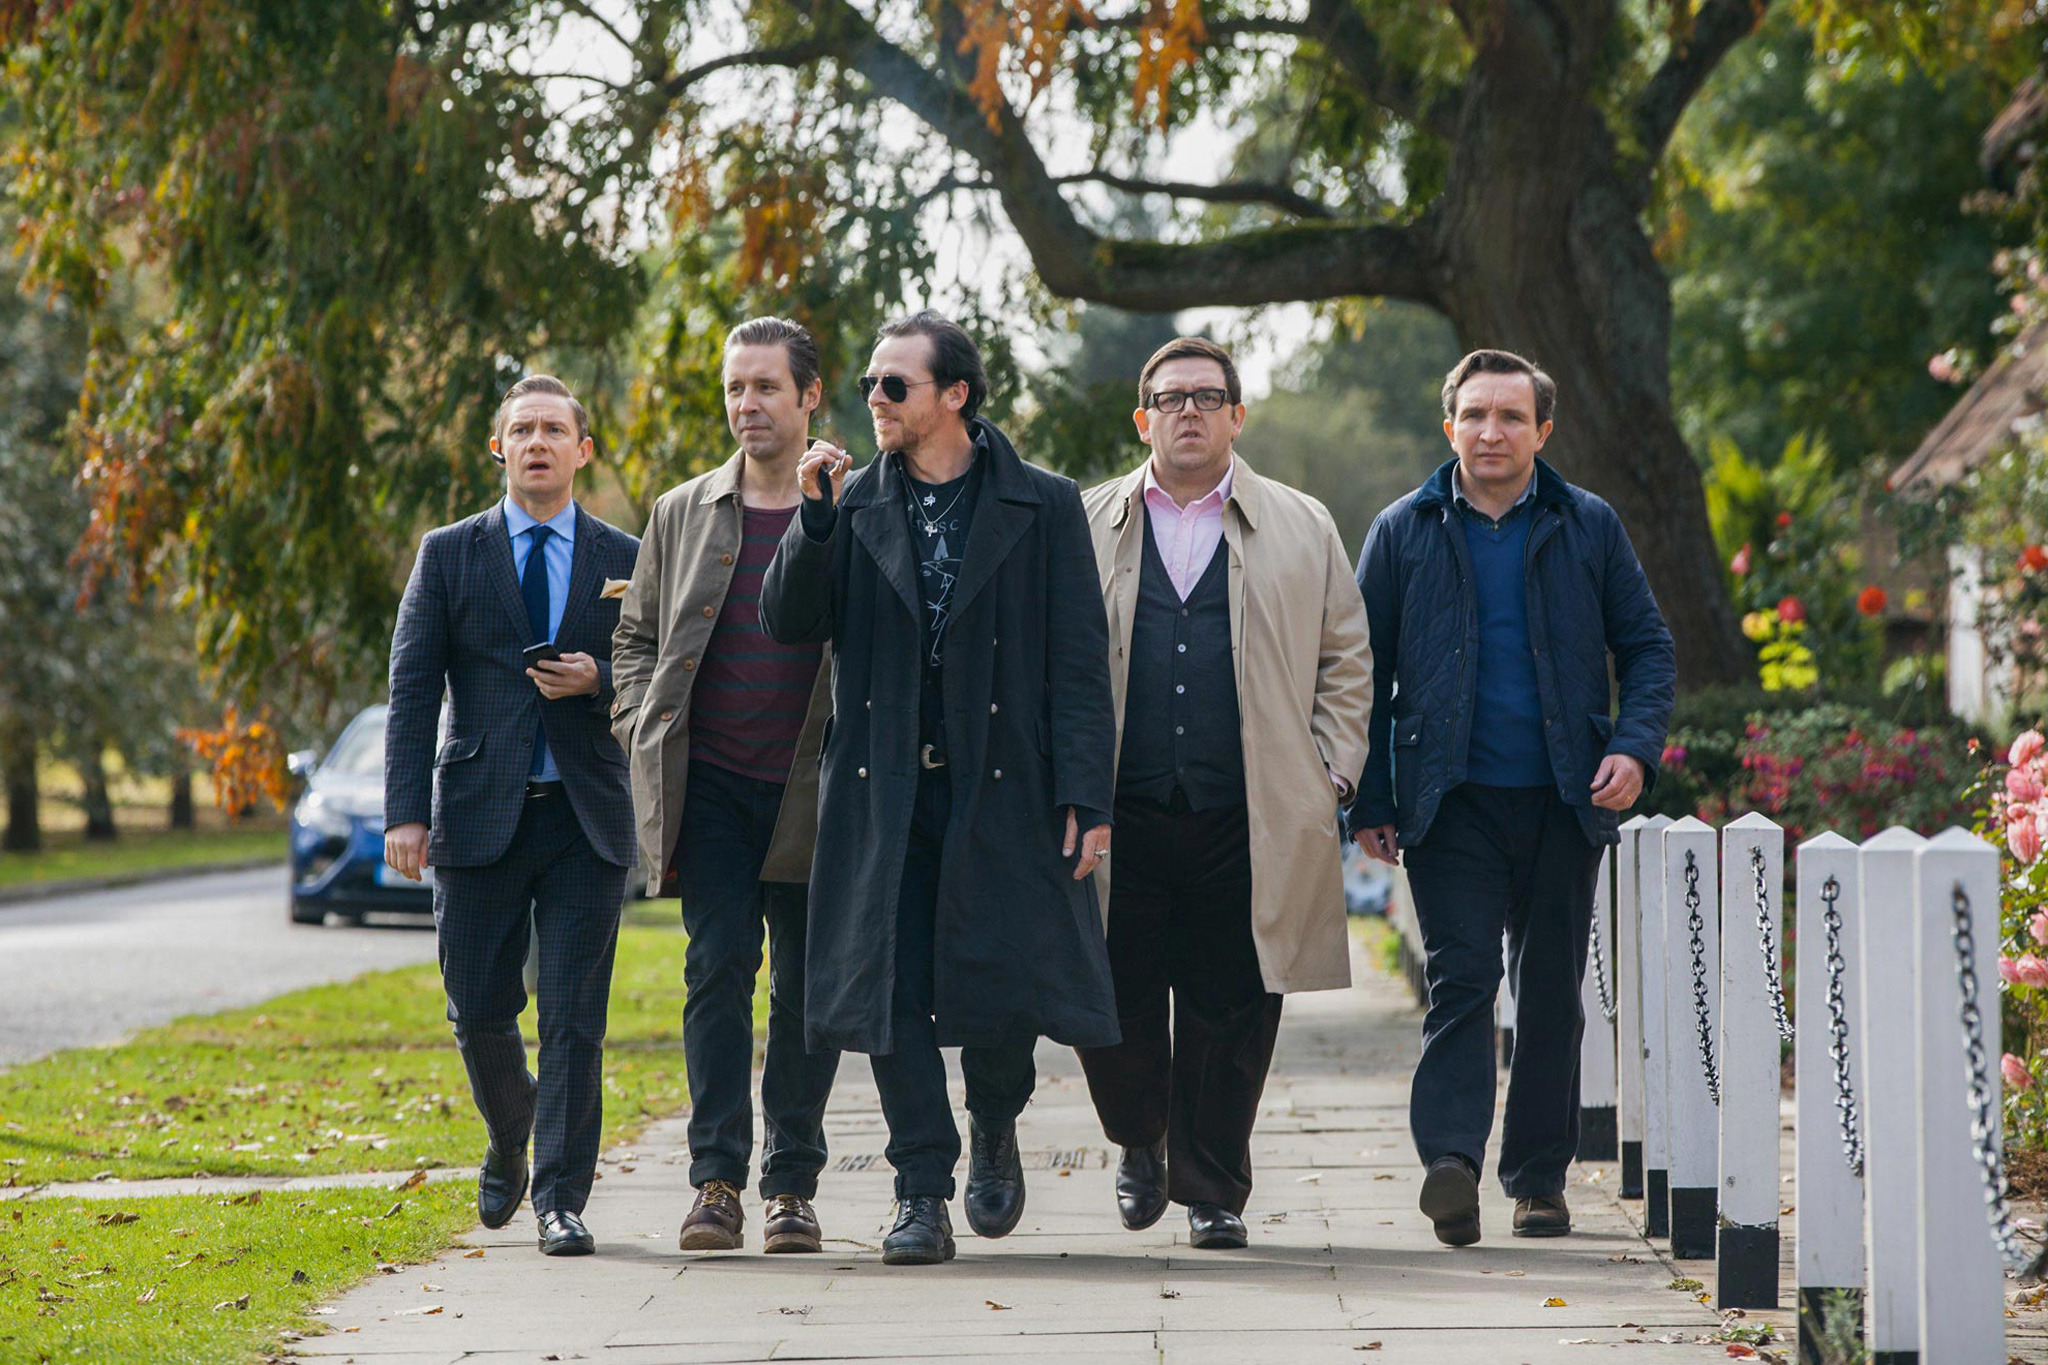 9. The World's End